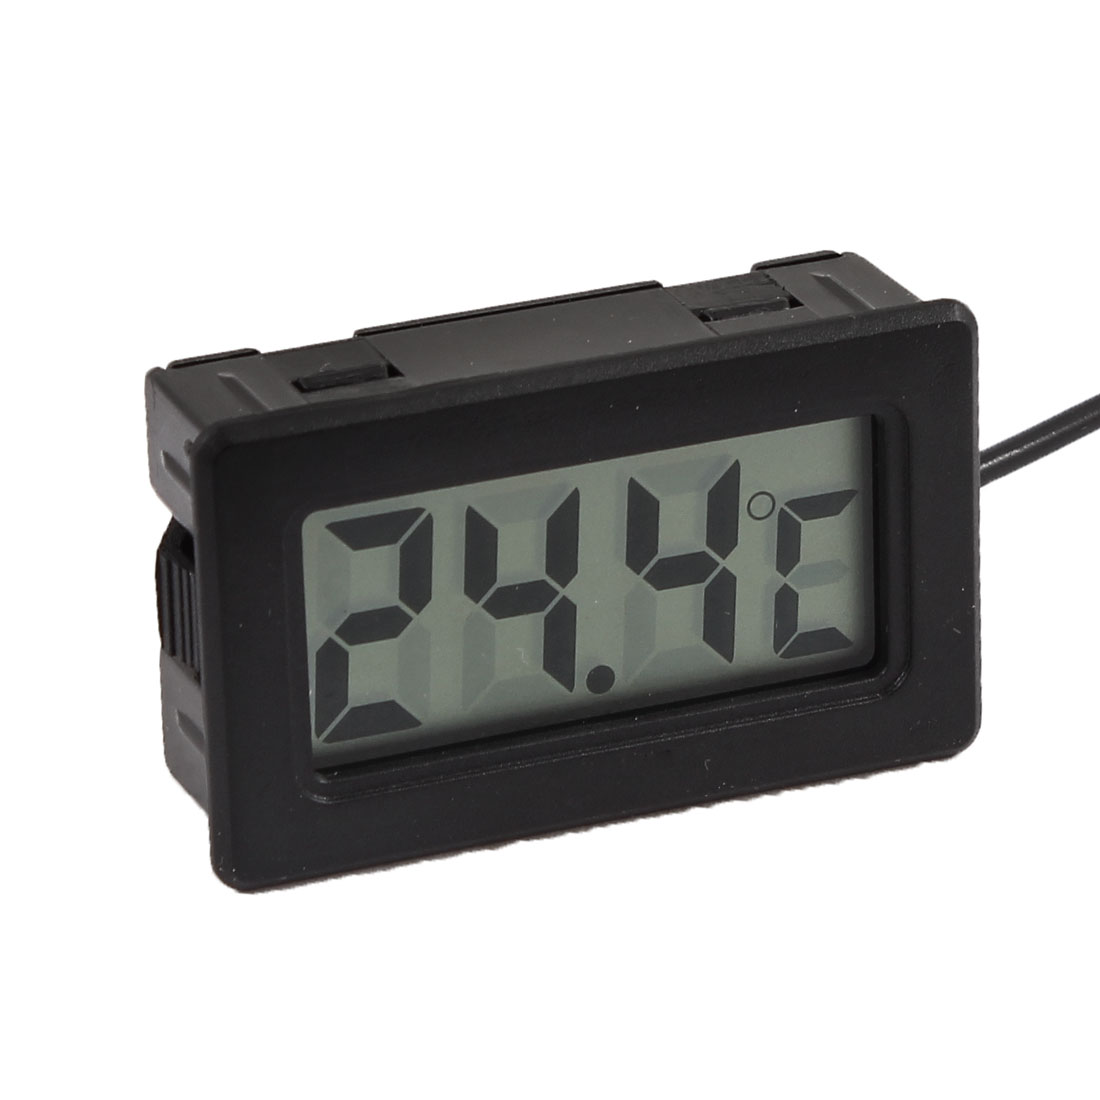 Display Cabinet LCD Display Digital Thermometer w 3.3Ft Long Cable